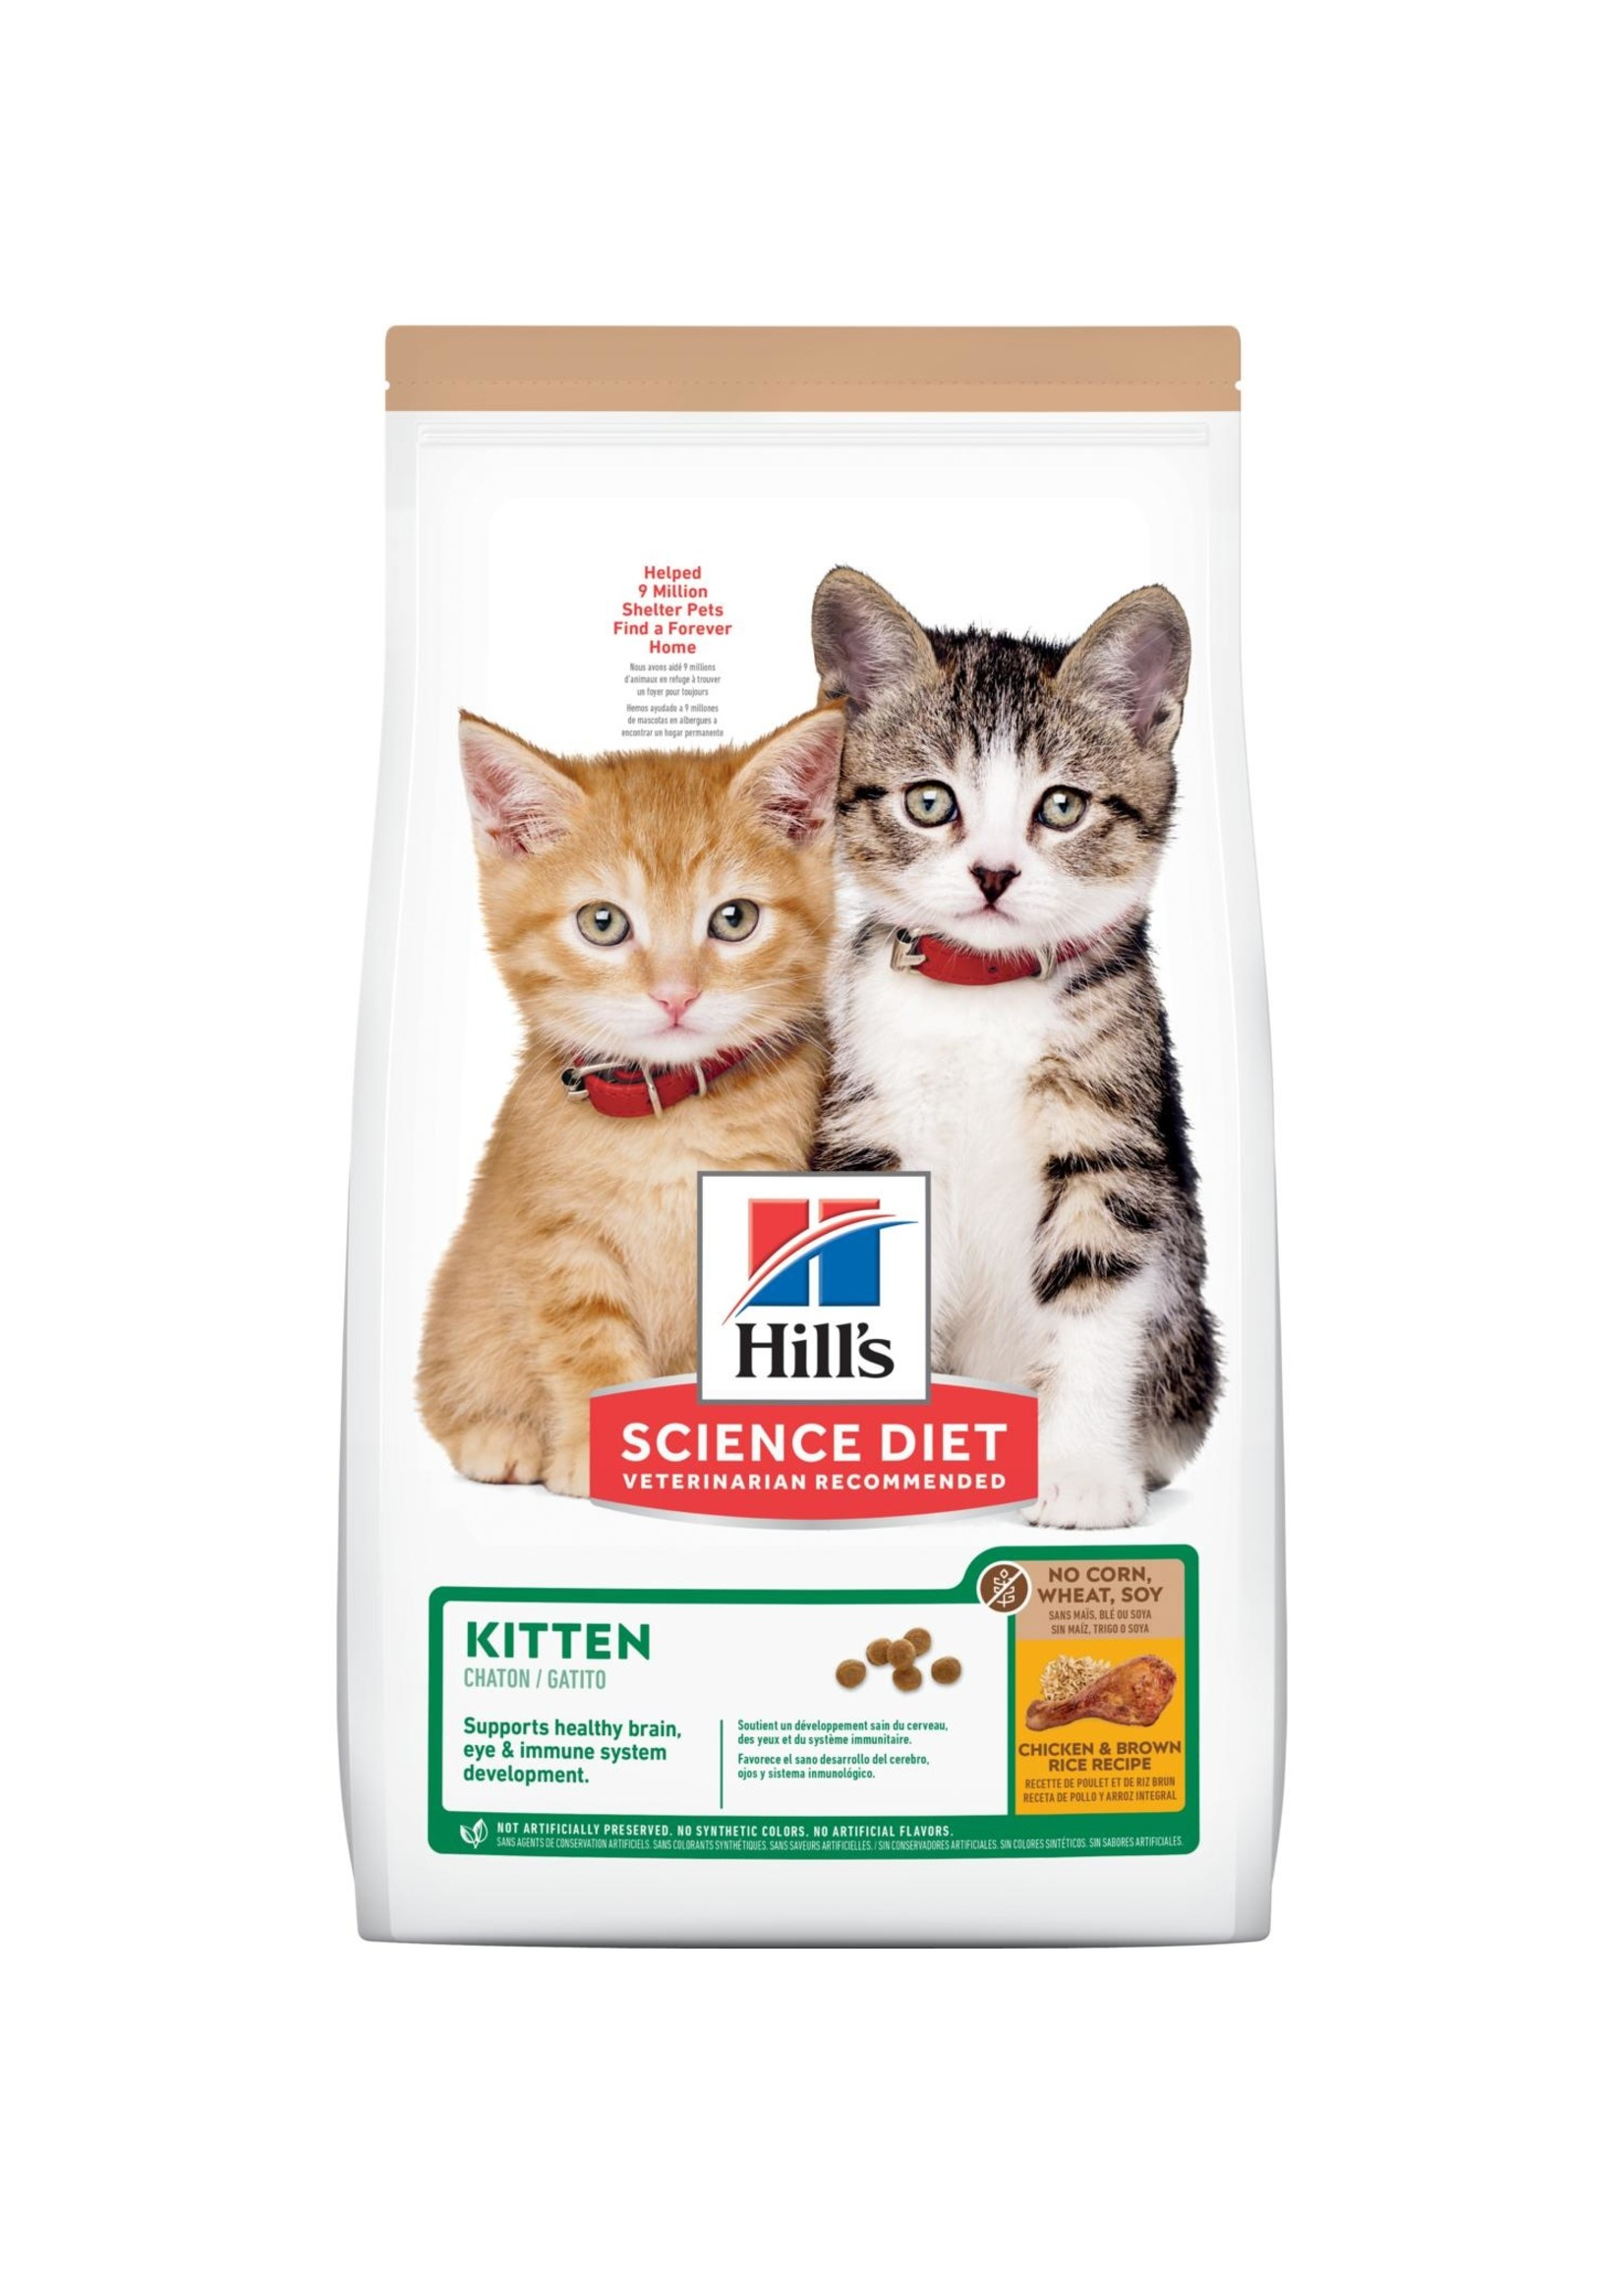 Hill's Science Diet Hill's Science Diet Kitten, No Corn, Wheat, or Soy Cat Food, 6lb Bag